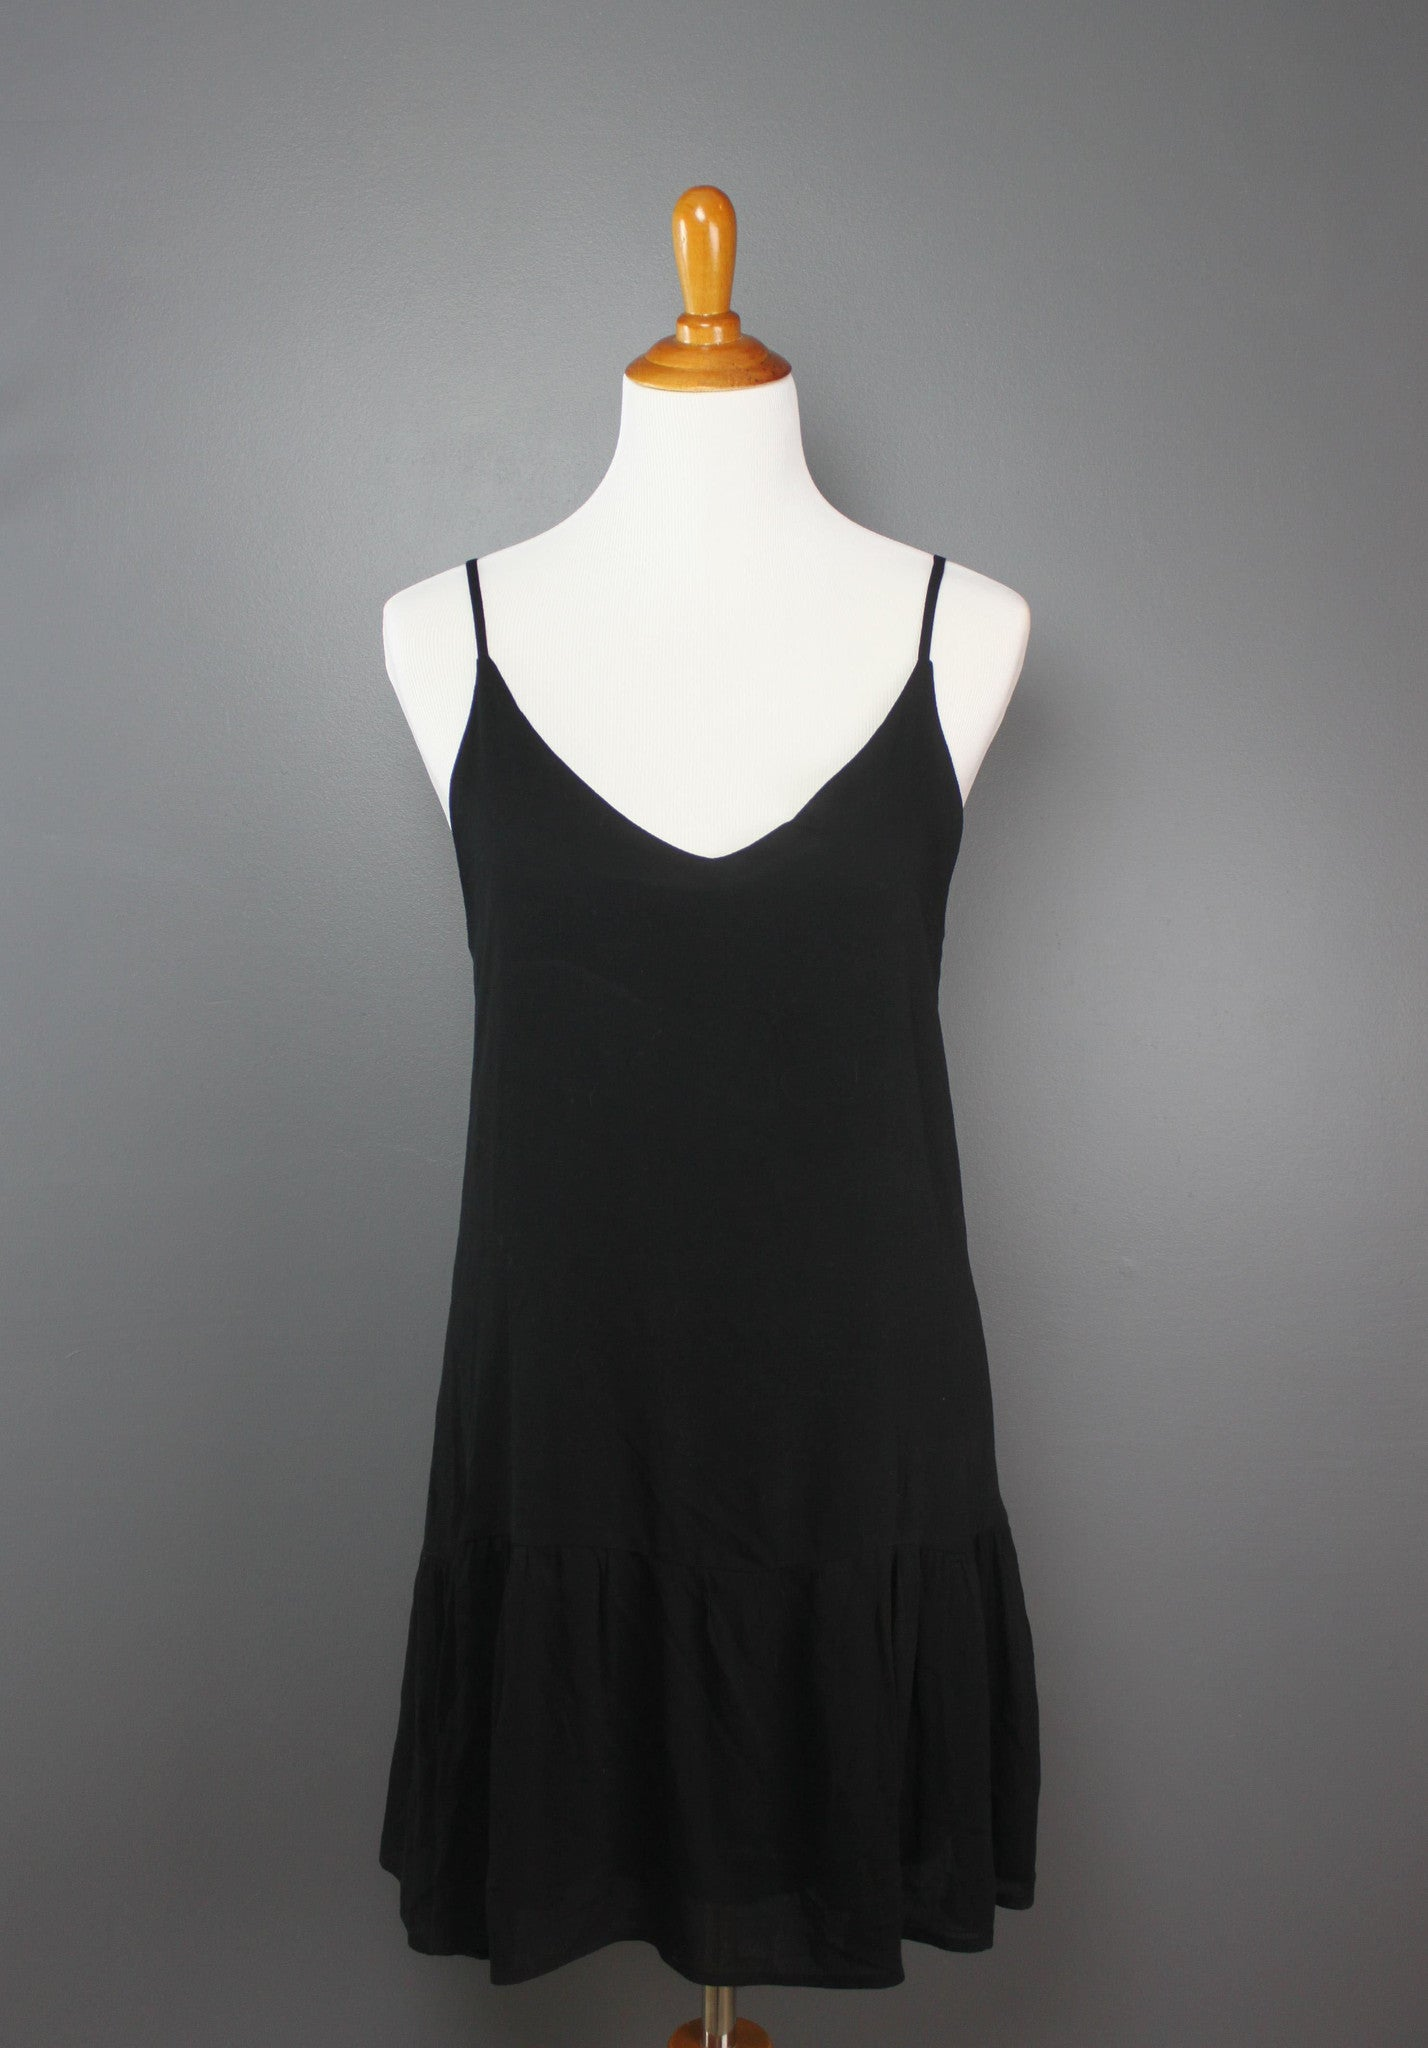 The Minimalist Dress